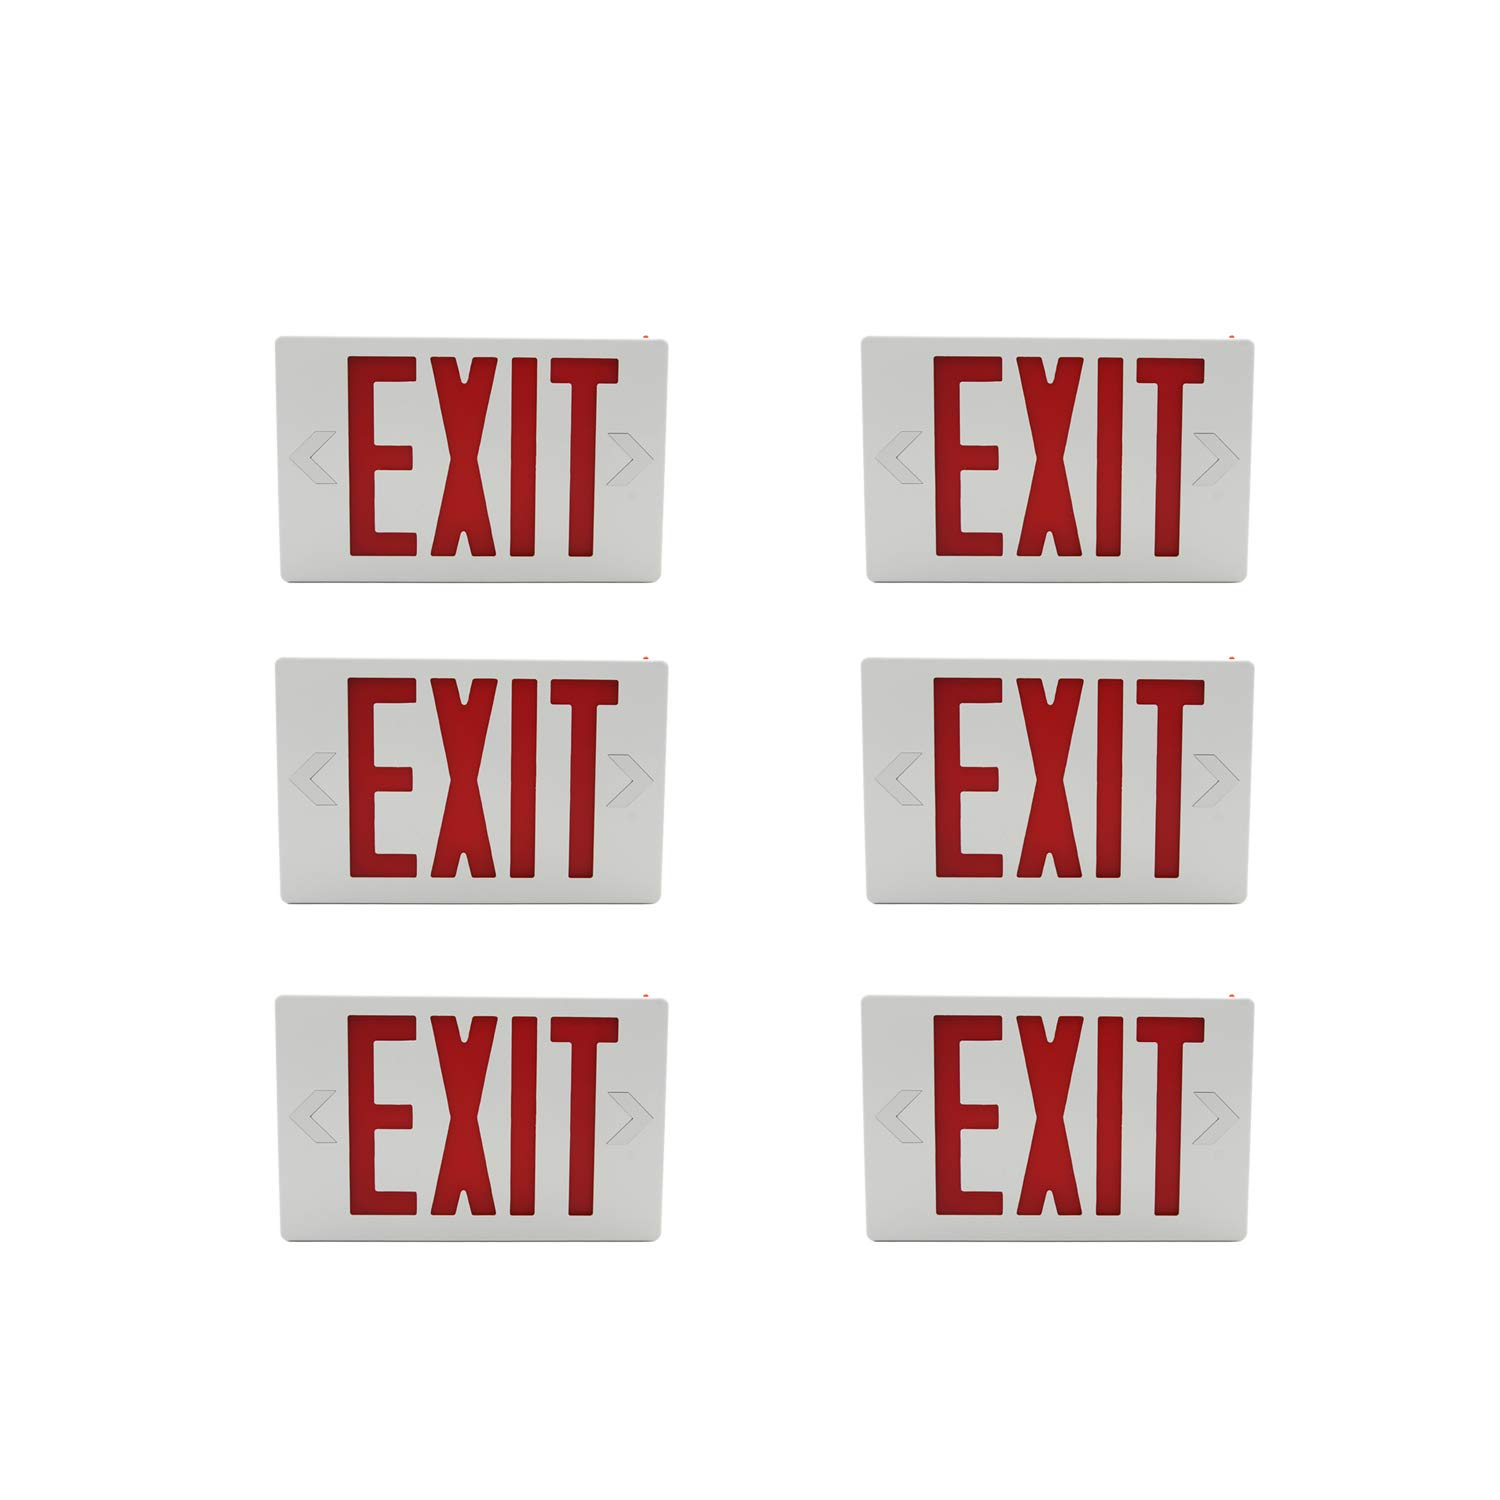 HYD-Parts 6 Sets of LED Exit Sign Emergency Light,UL Certified - Hardwired Red LED Exit Sign, Modern Design - Battery Backup - Emergency Fire Safety